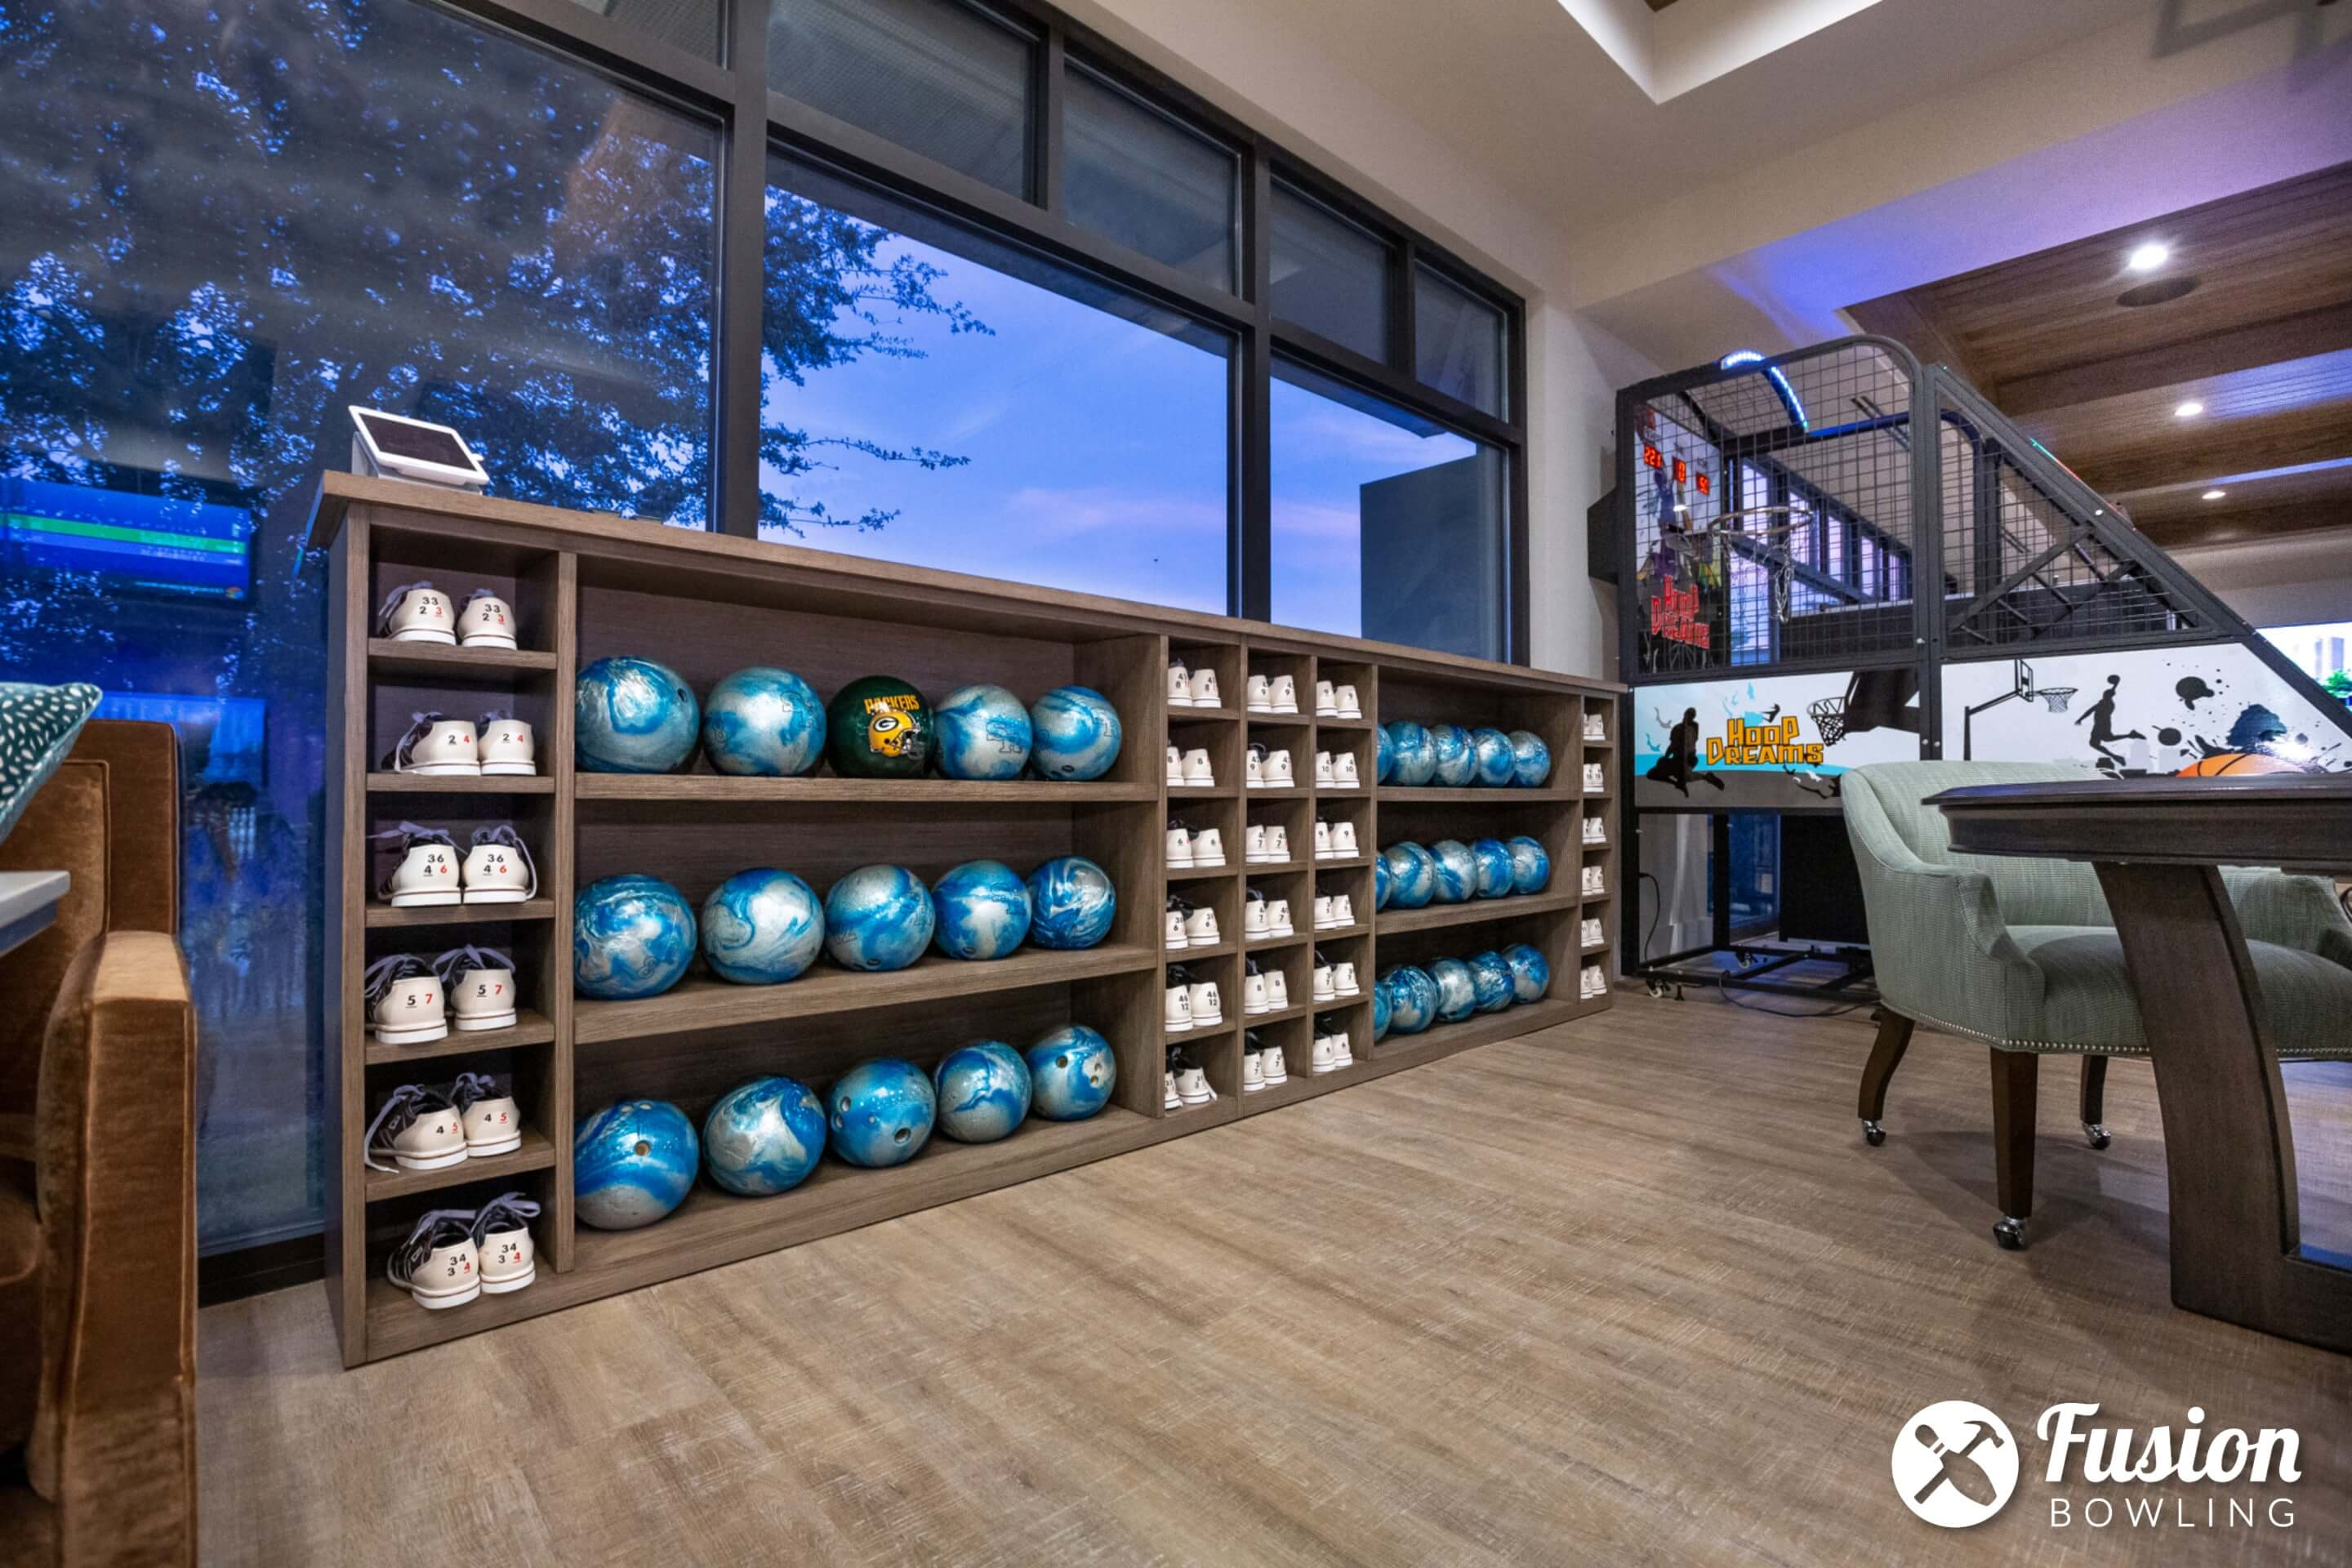 Bowling ball and shoe storage cubby holes.